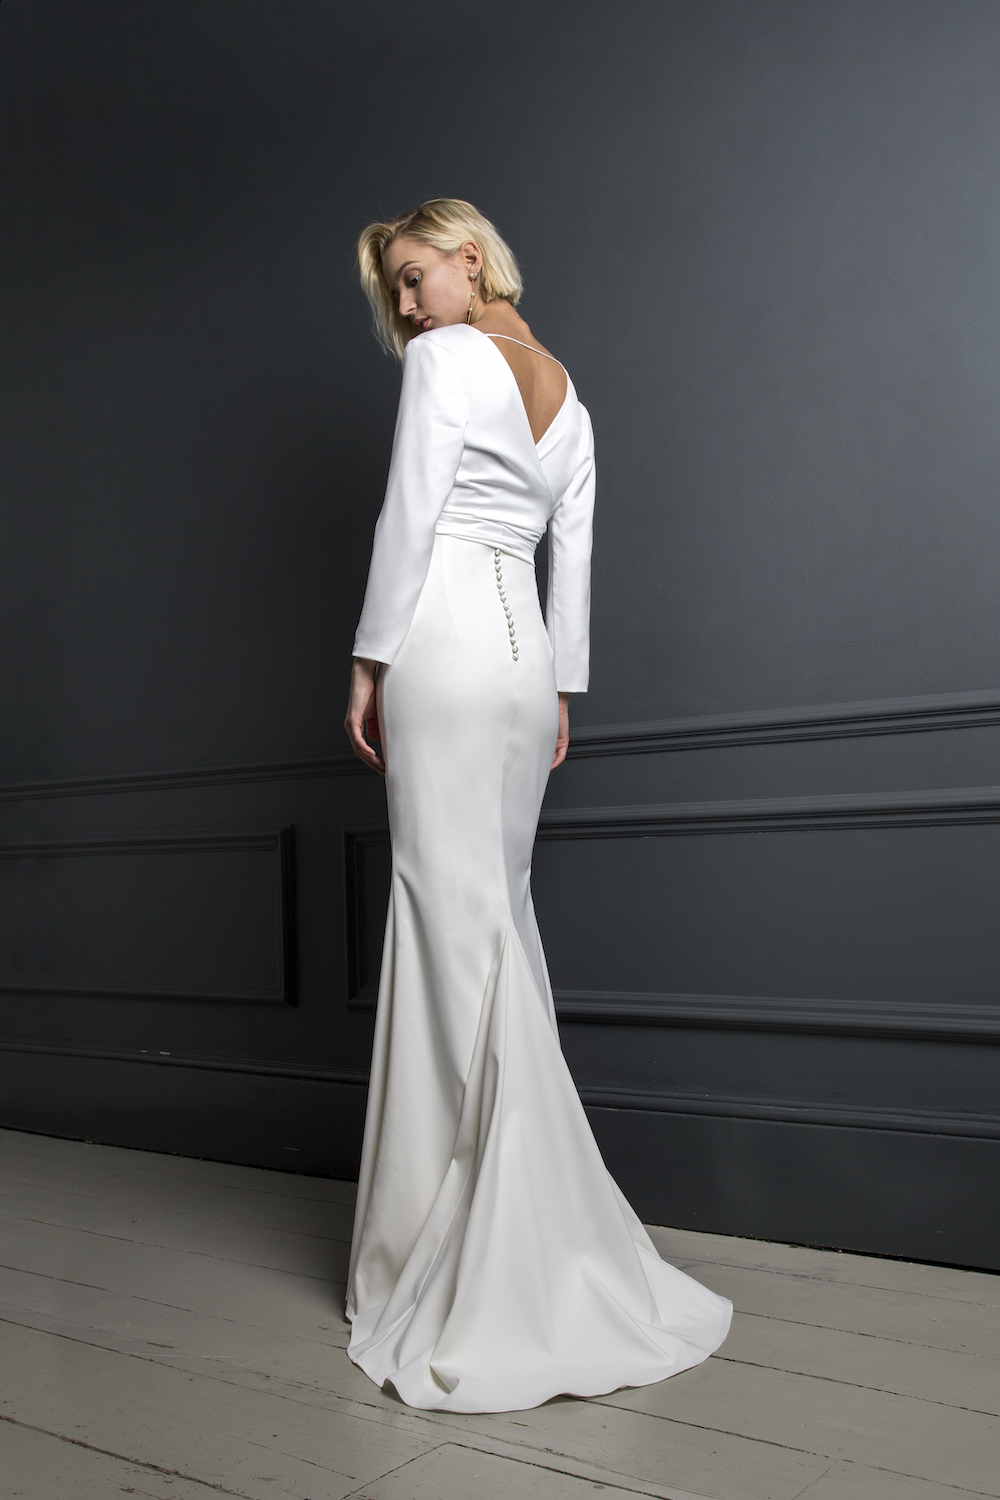 TOBY TOP & TONI SKIRT | WEDDING DRESS BY HALFPENNY LONDON